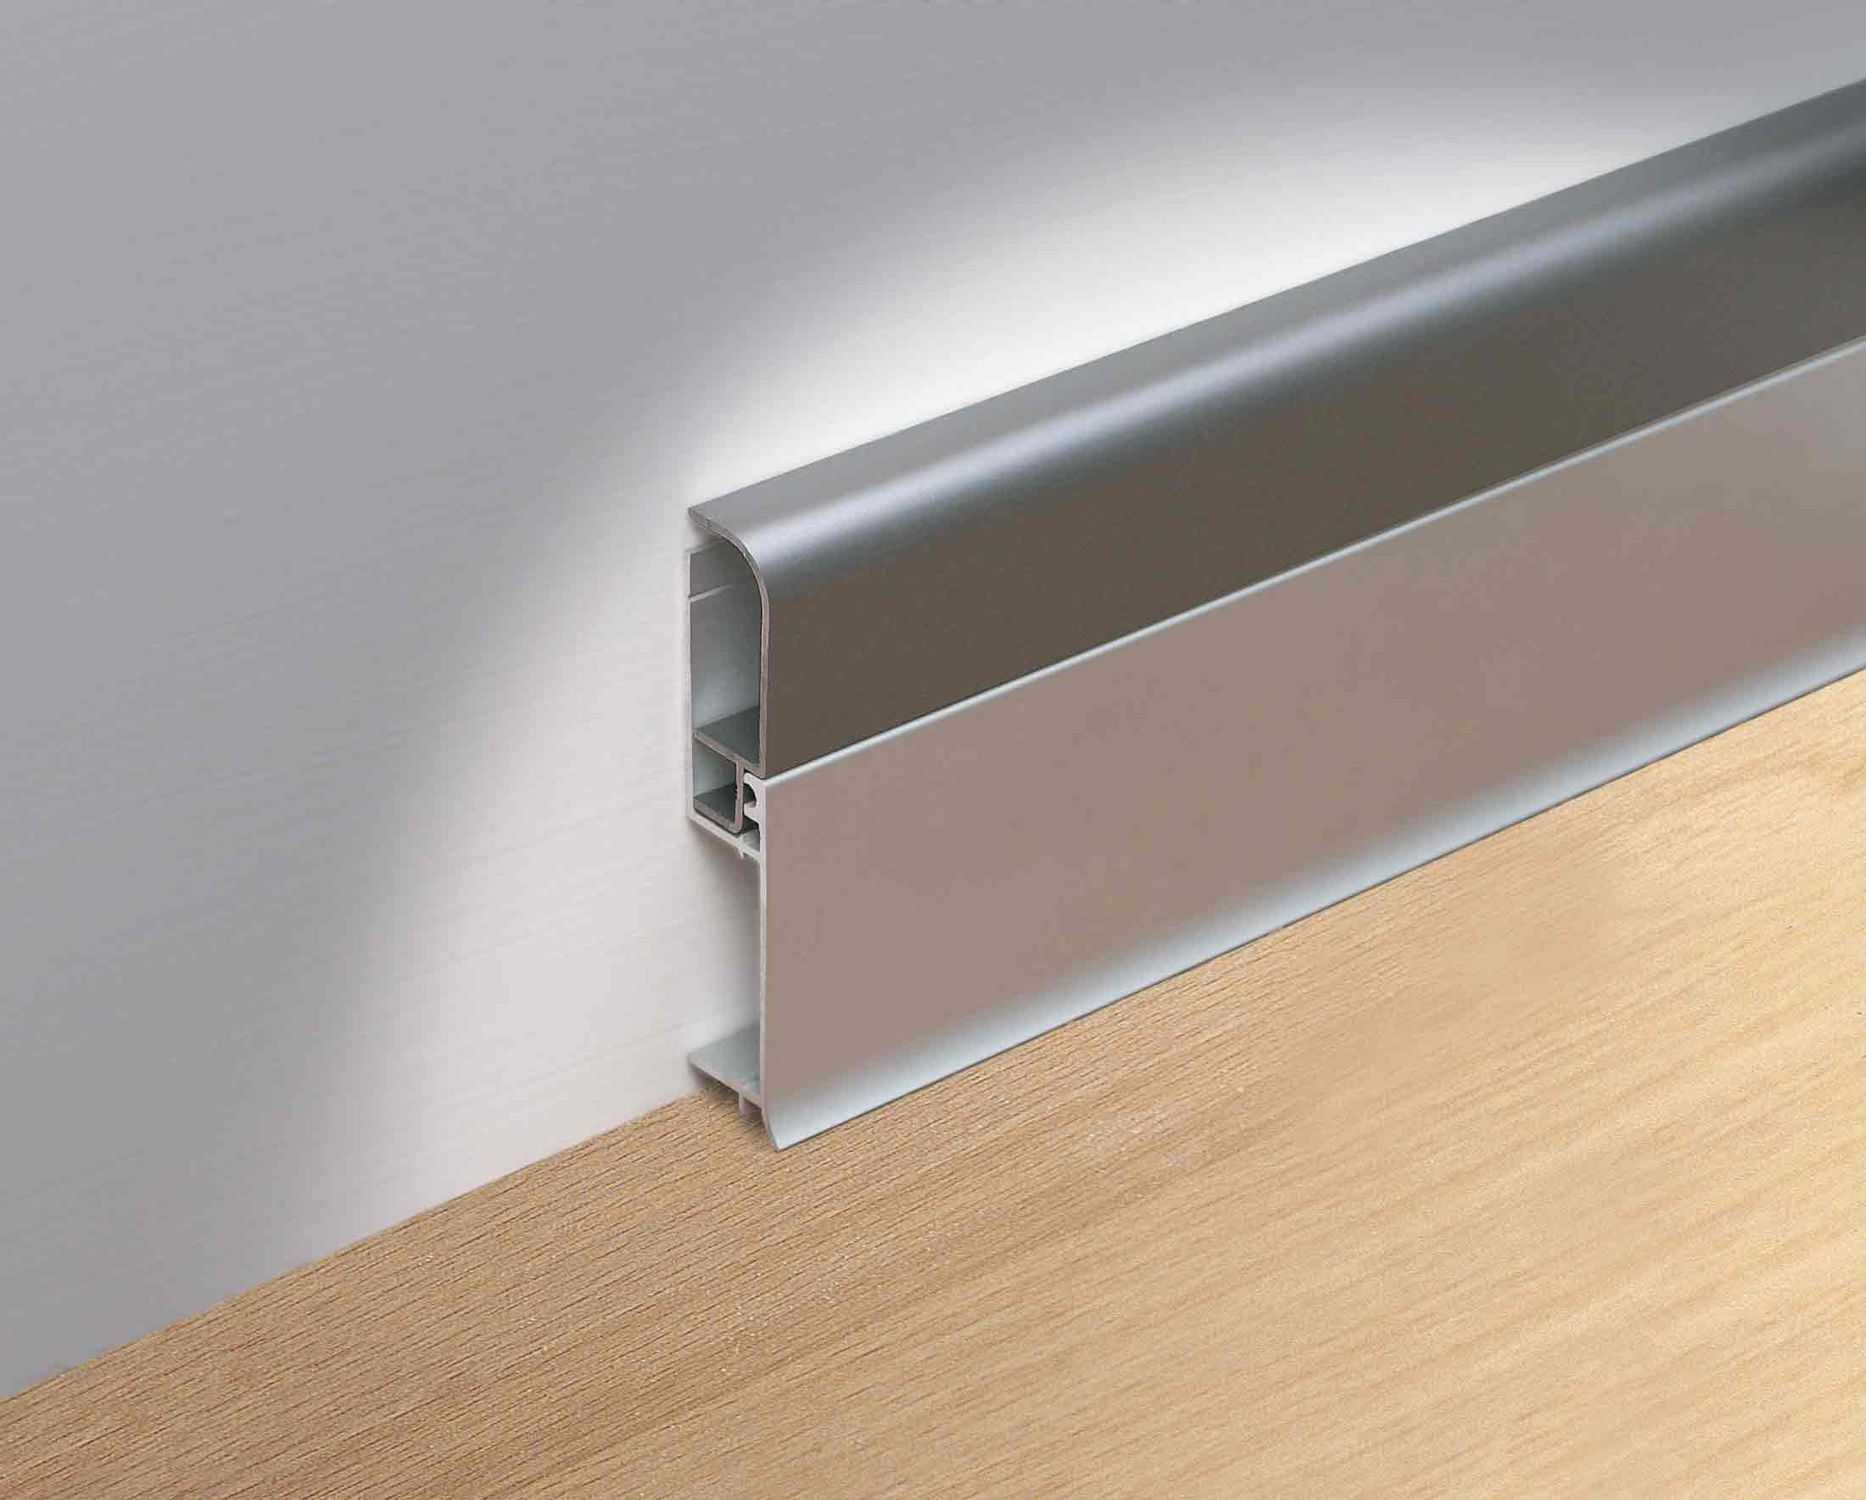 ... Aluminum baseboard / for electrical wiring BATTISCOPA BI BICOLOR  PROFILITEC